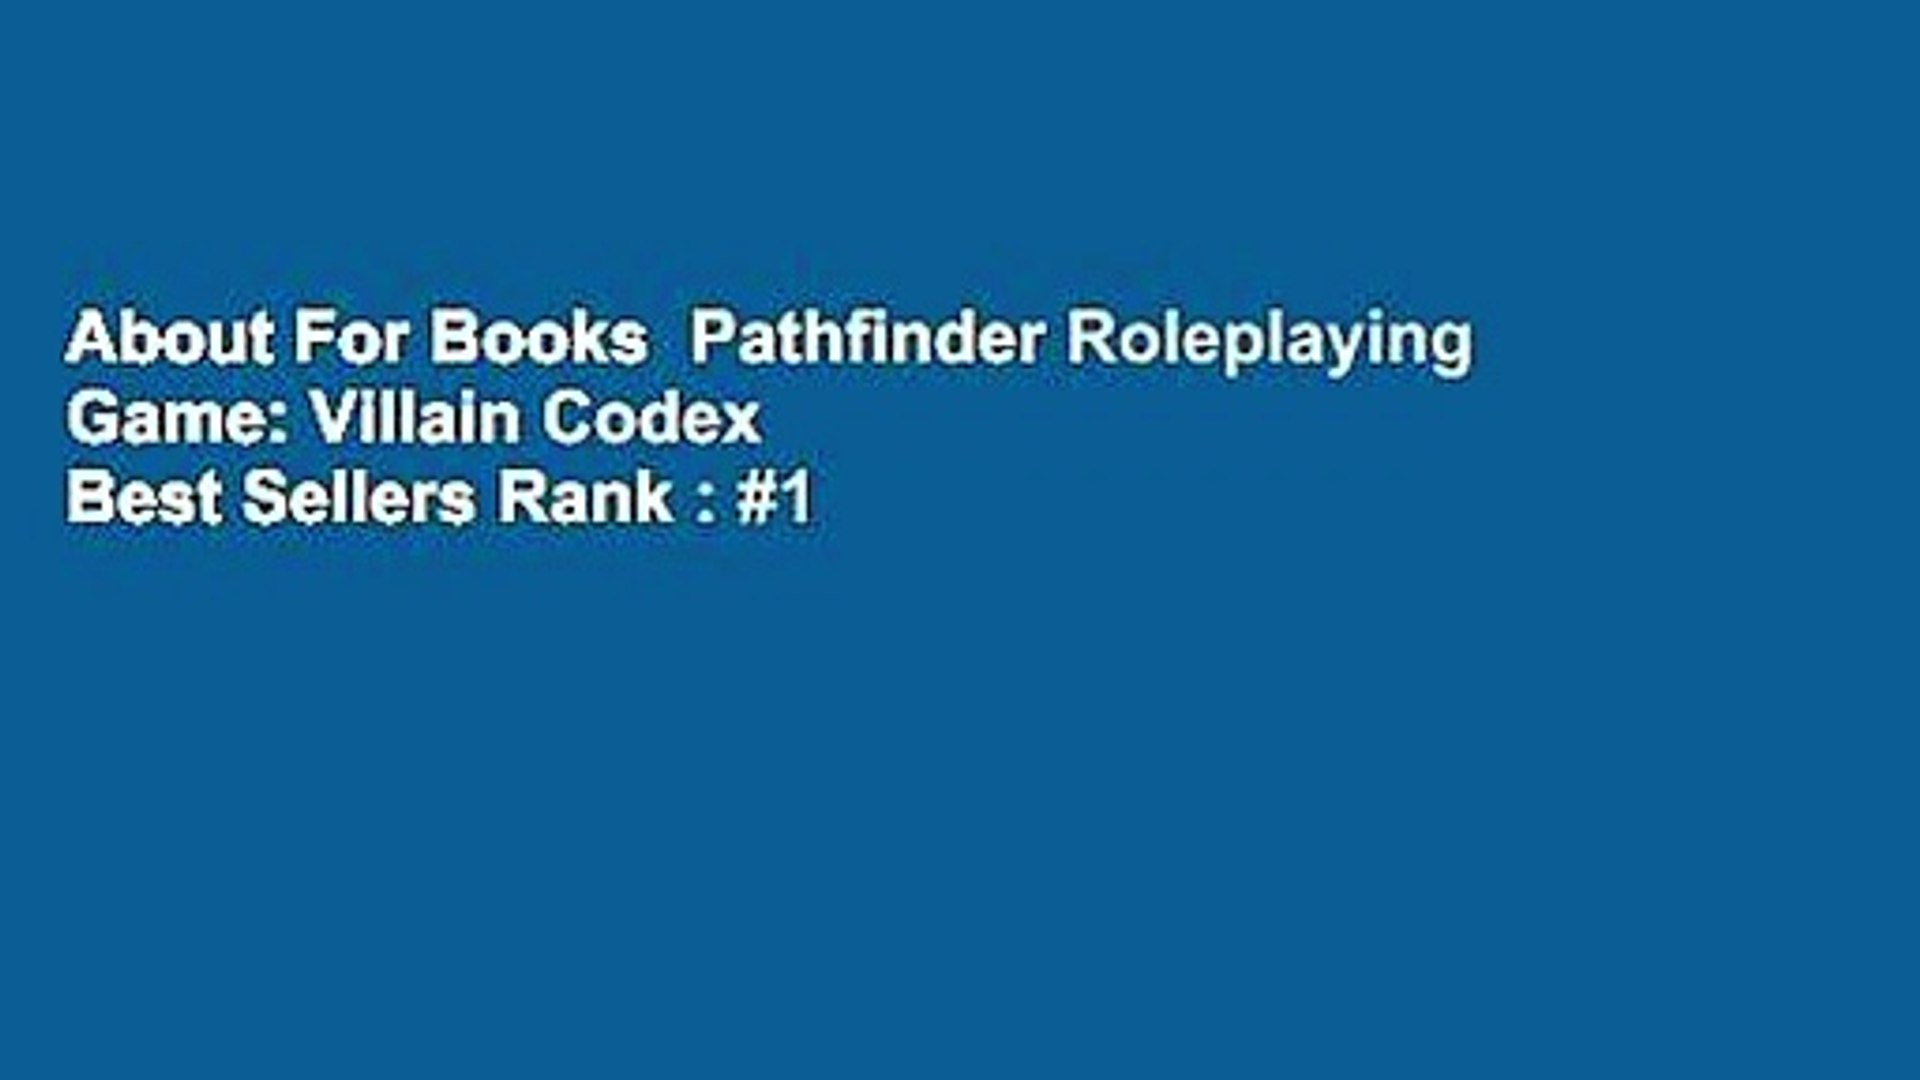 About For Books Pathfinder Roleplaying Game: Villain Codex Best Sellers  Rank : #1